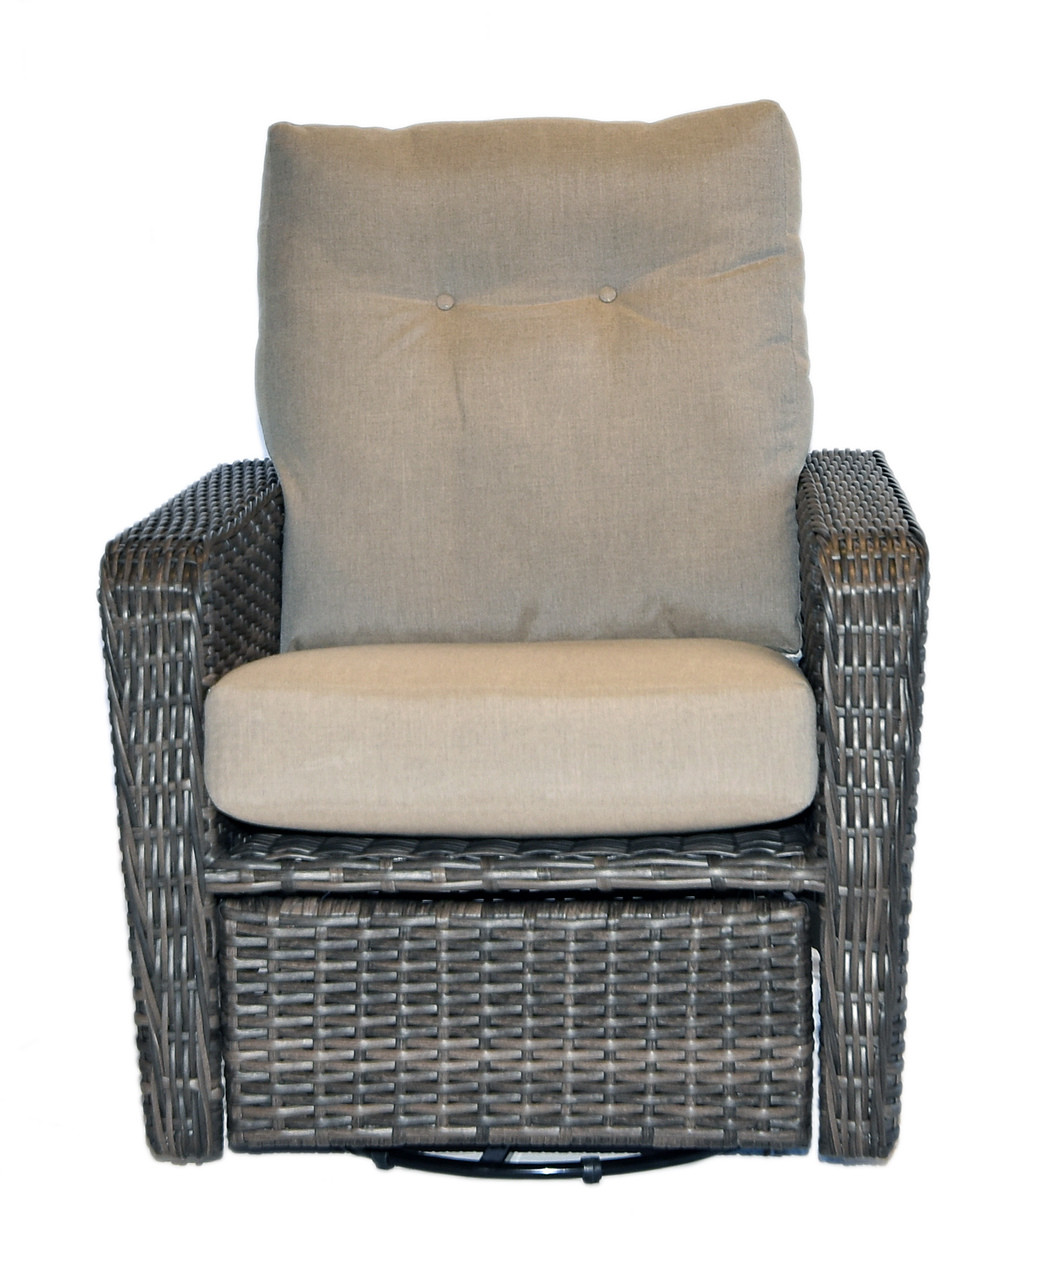 Cape Town Wicker Recliner Southern Outdoor Furniture